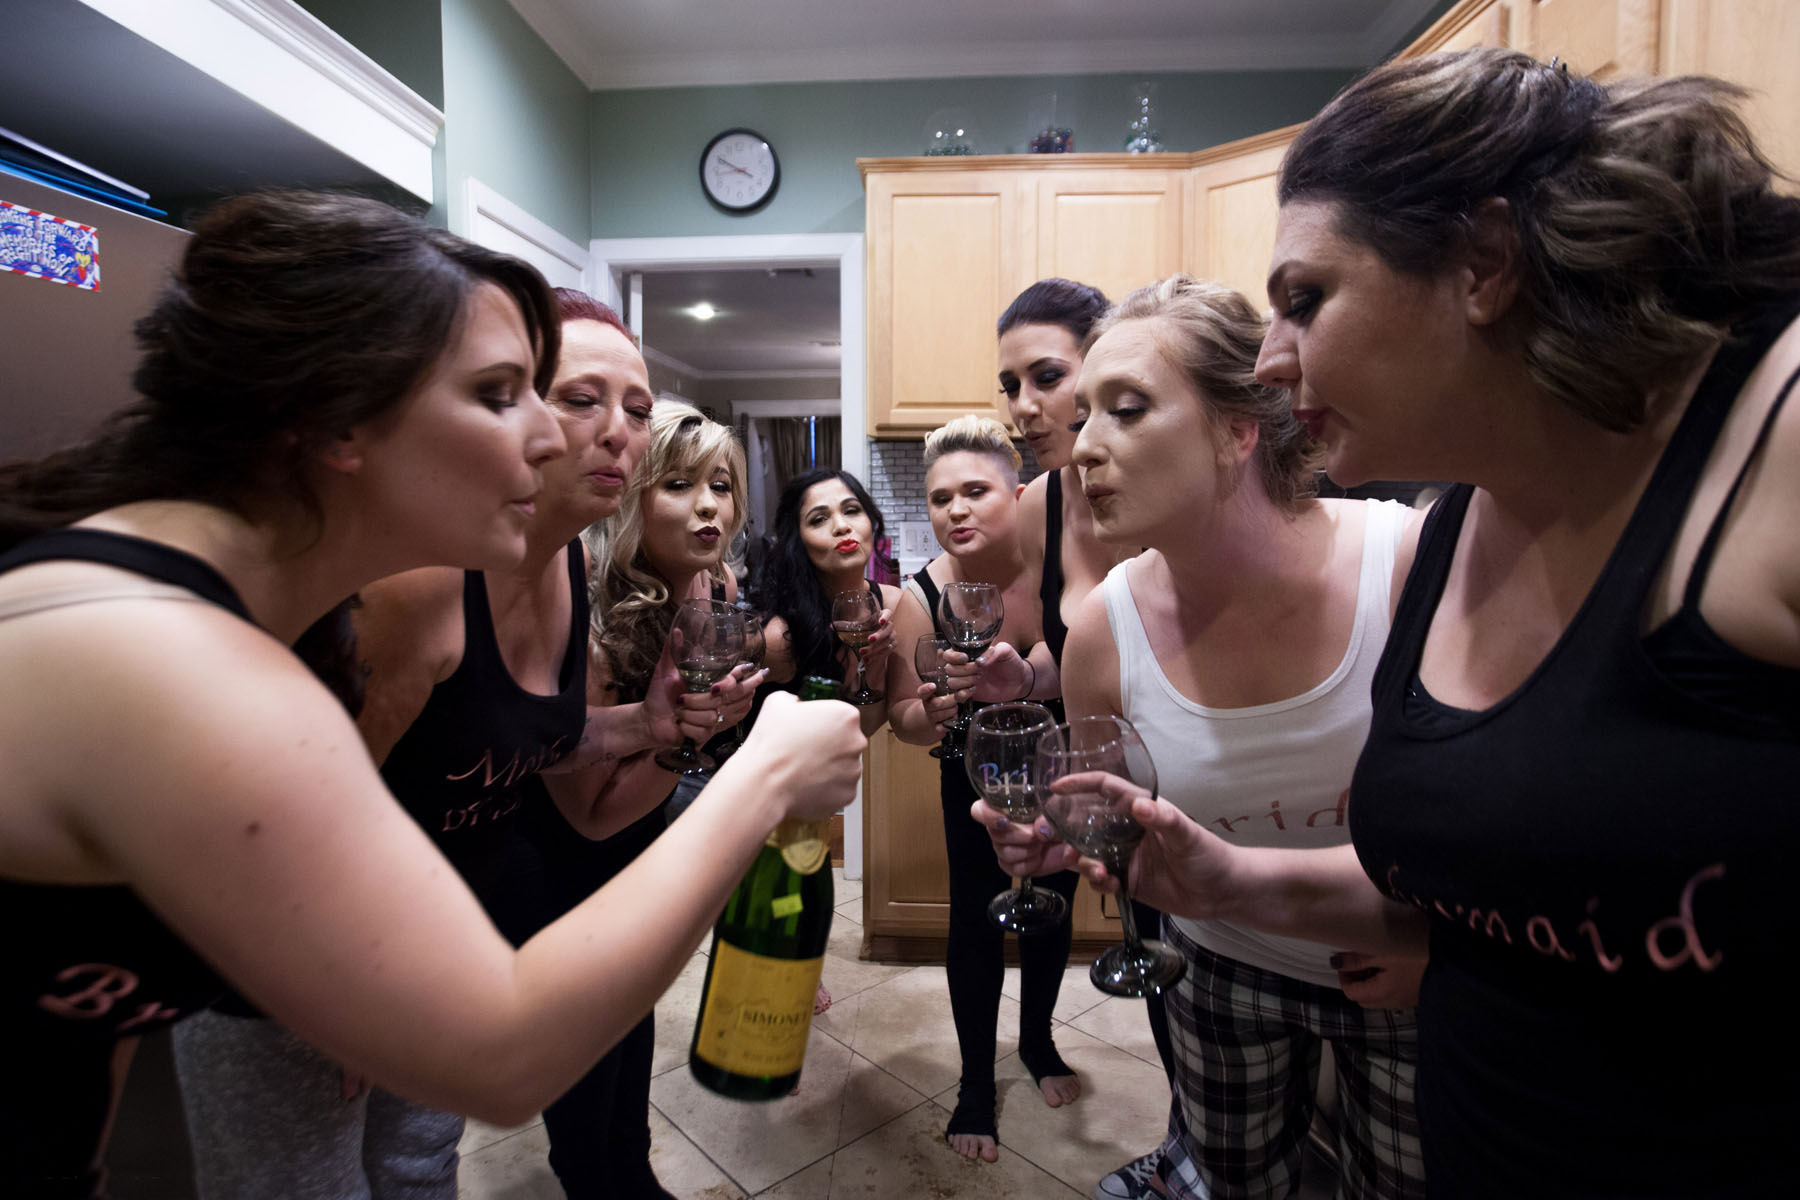 Popping Bottles, photo by: Audrey Graham